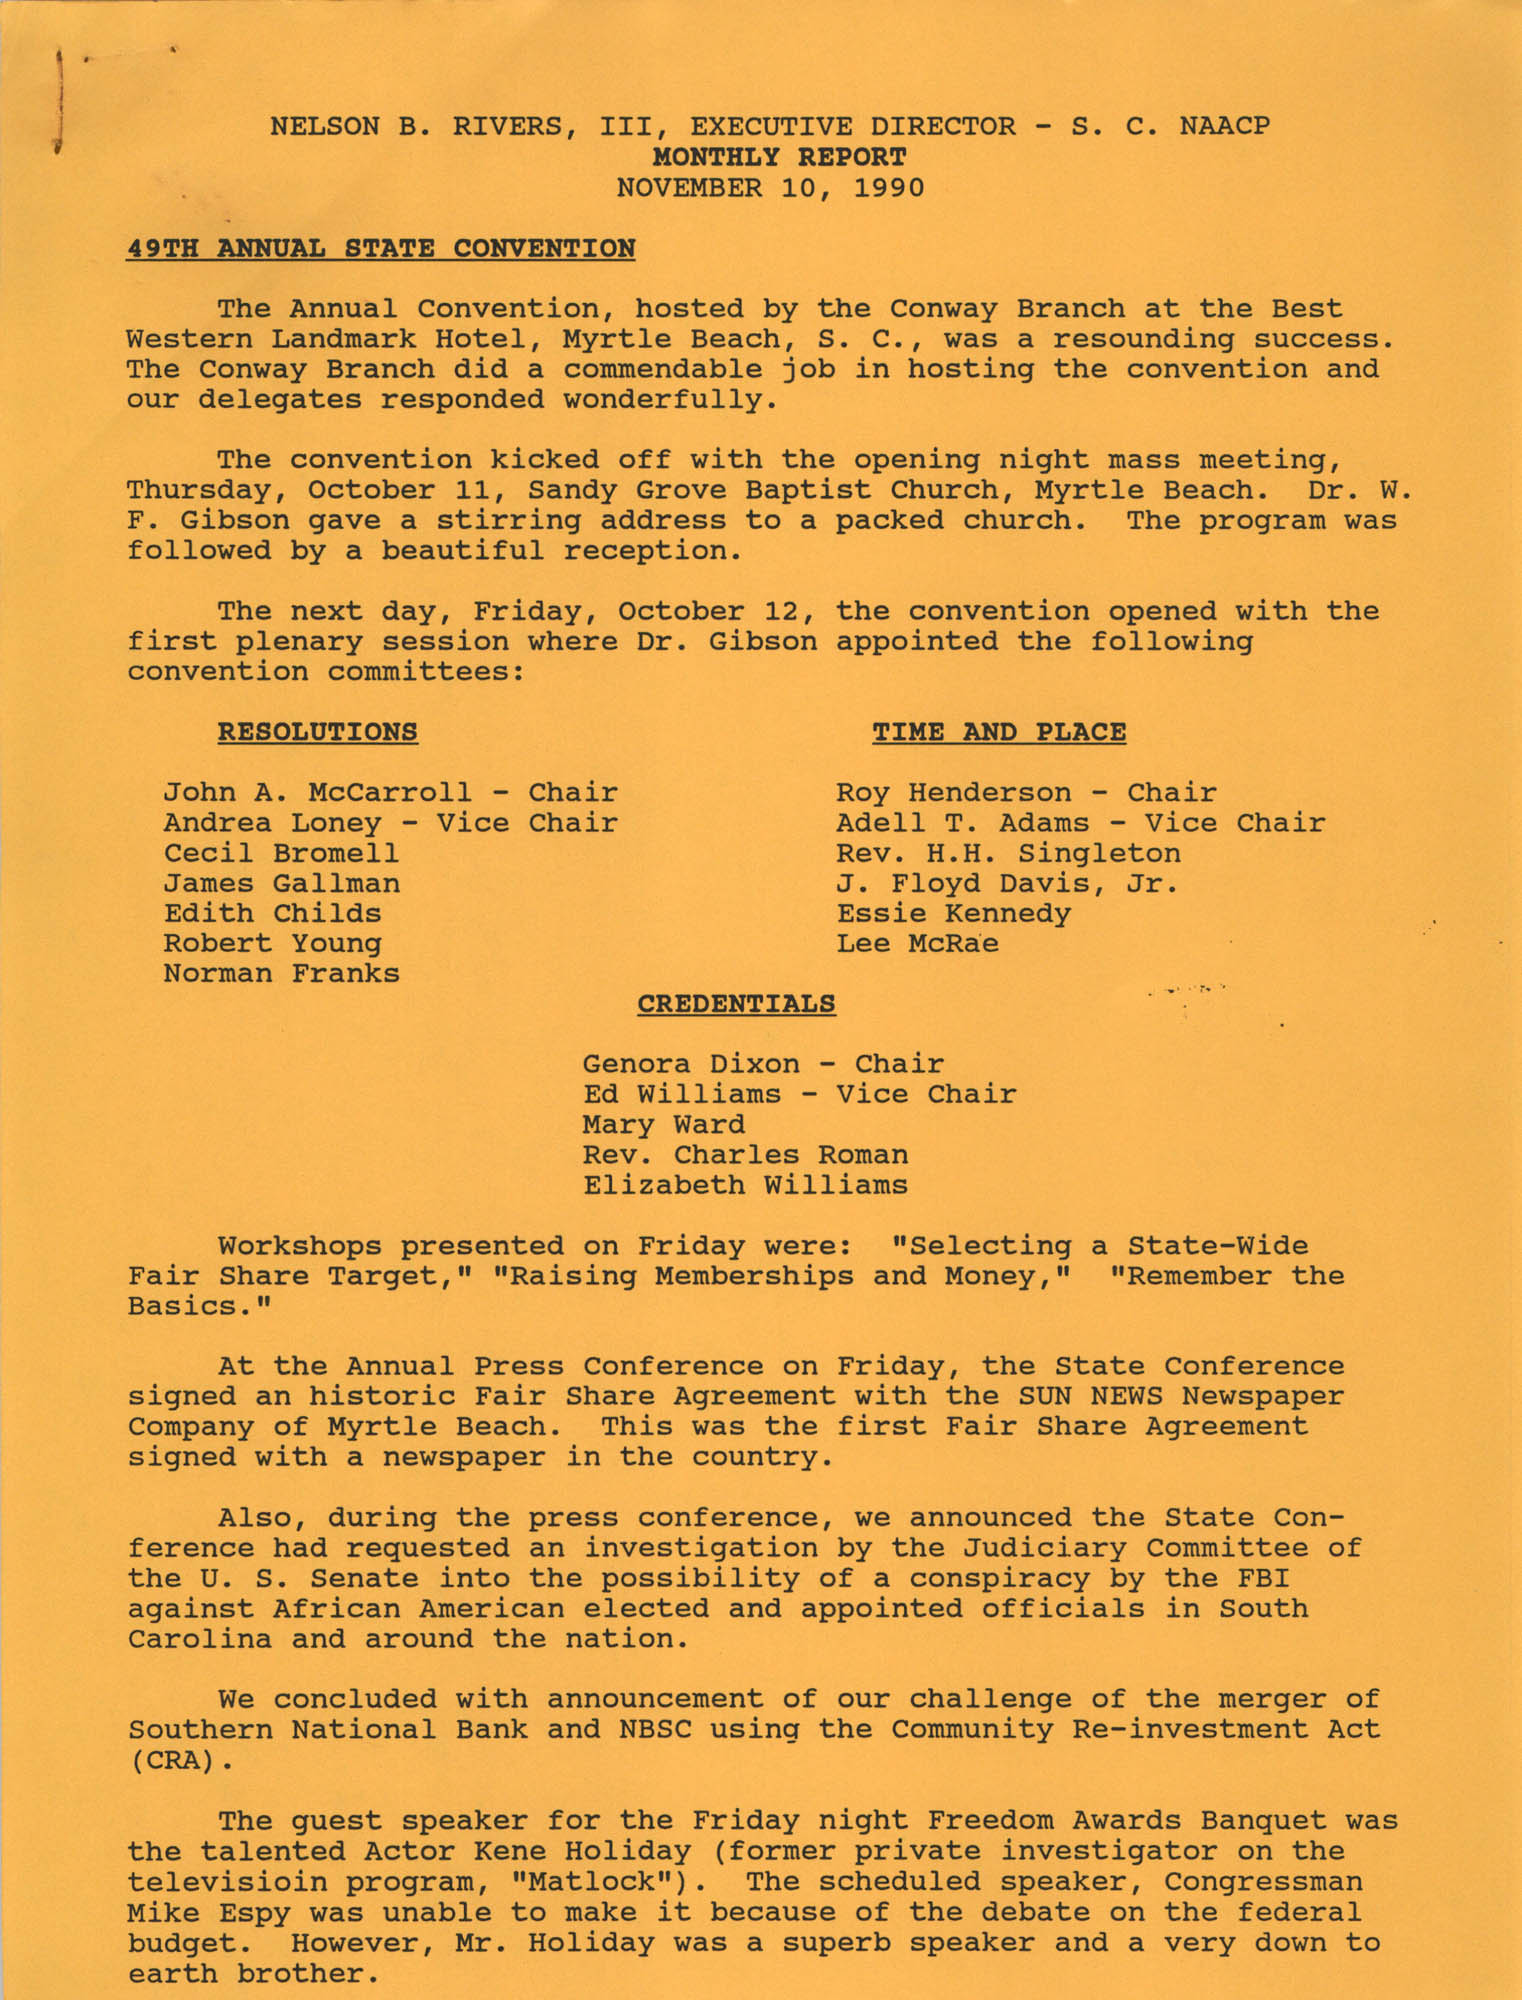 South Carolina Conference of Branches of the NAACP Monthly Report, November 10, 1990